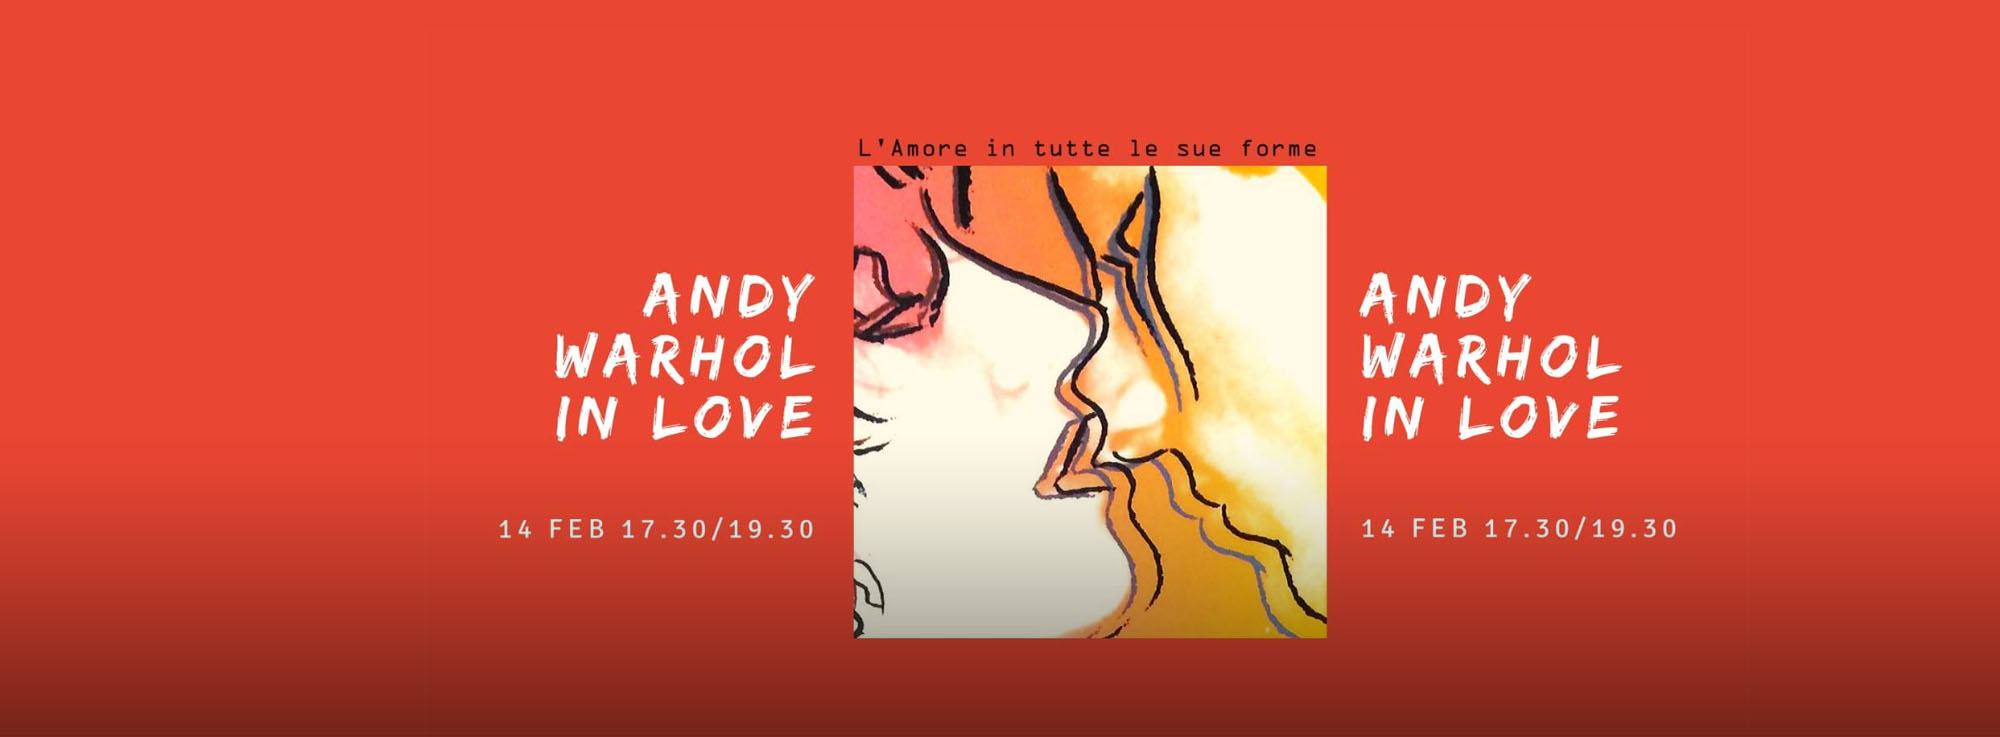 Mesagne: Andy Warhol in Love